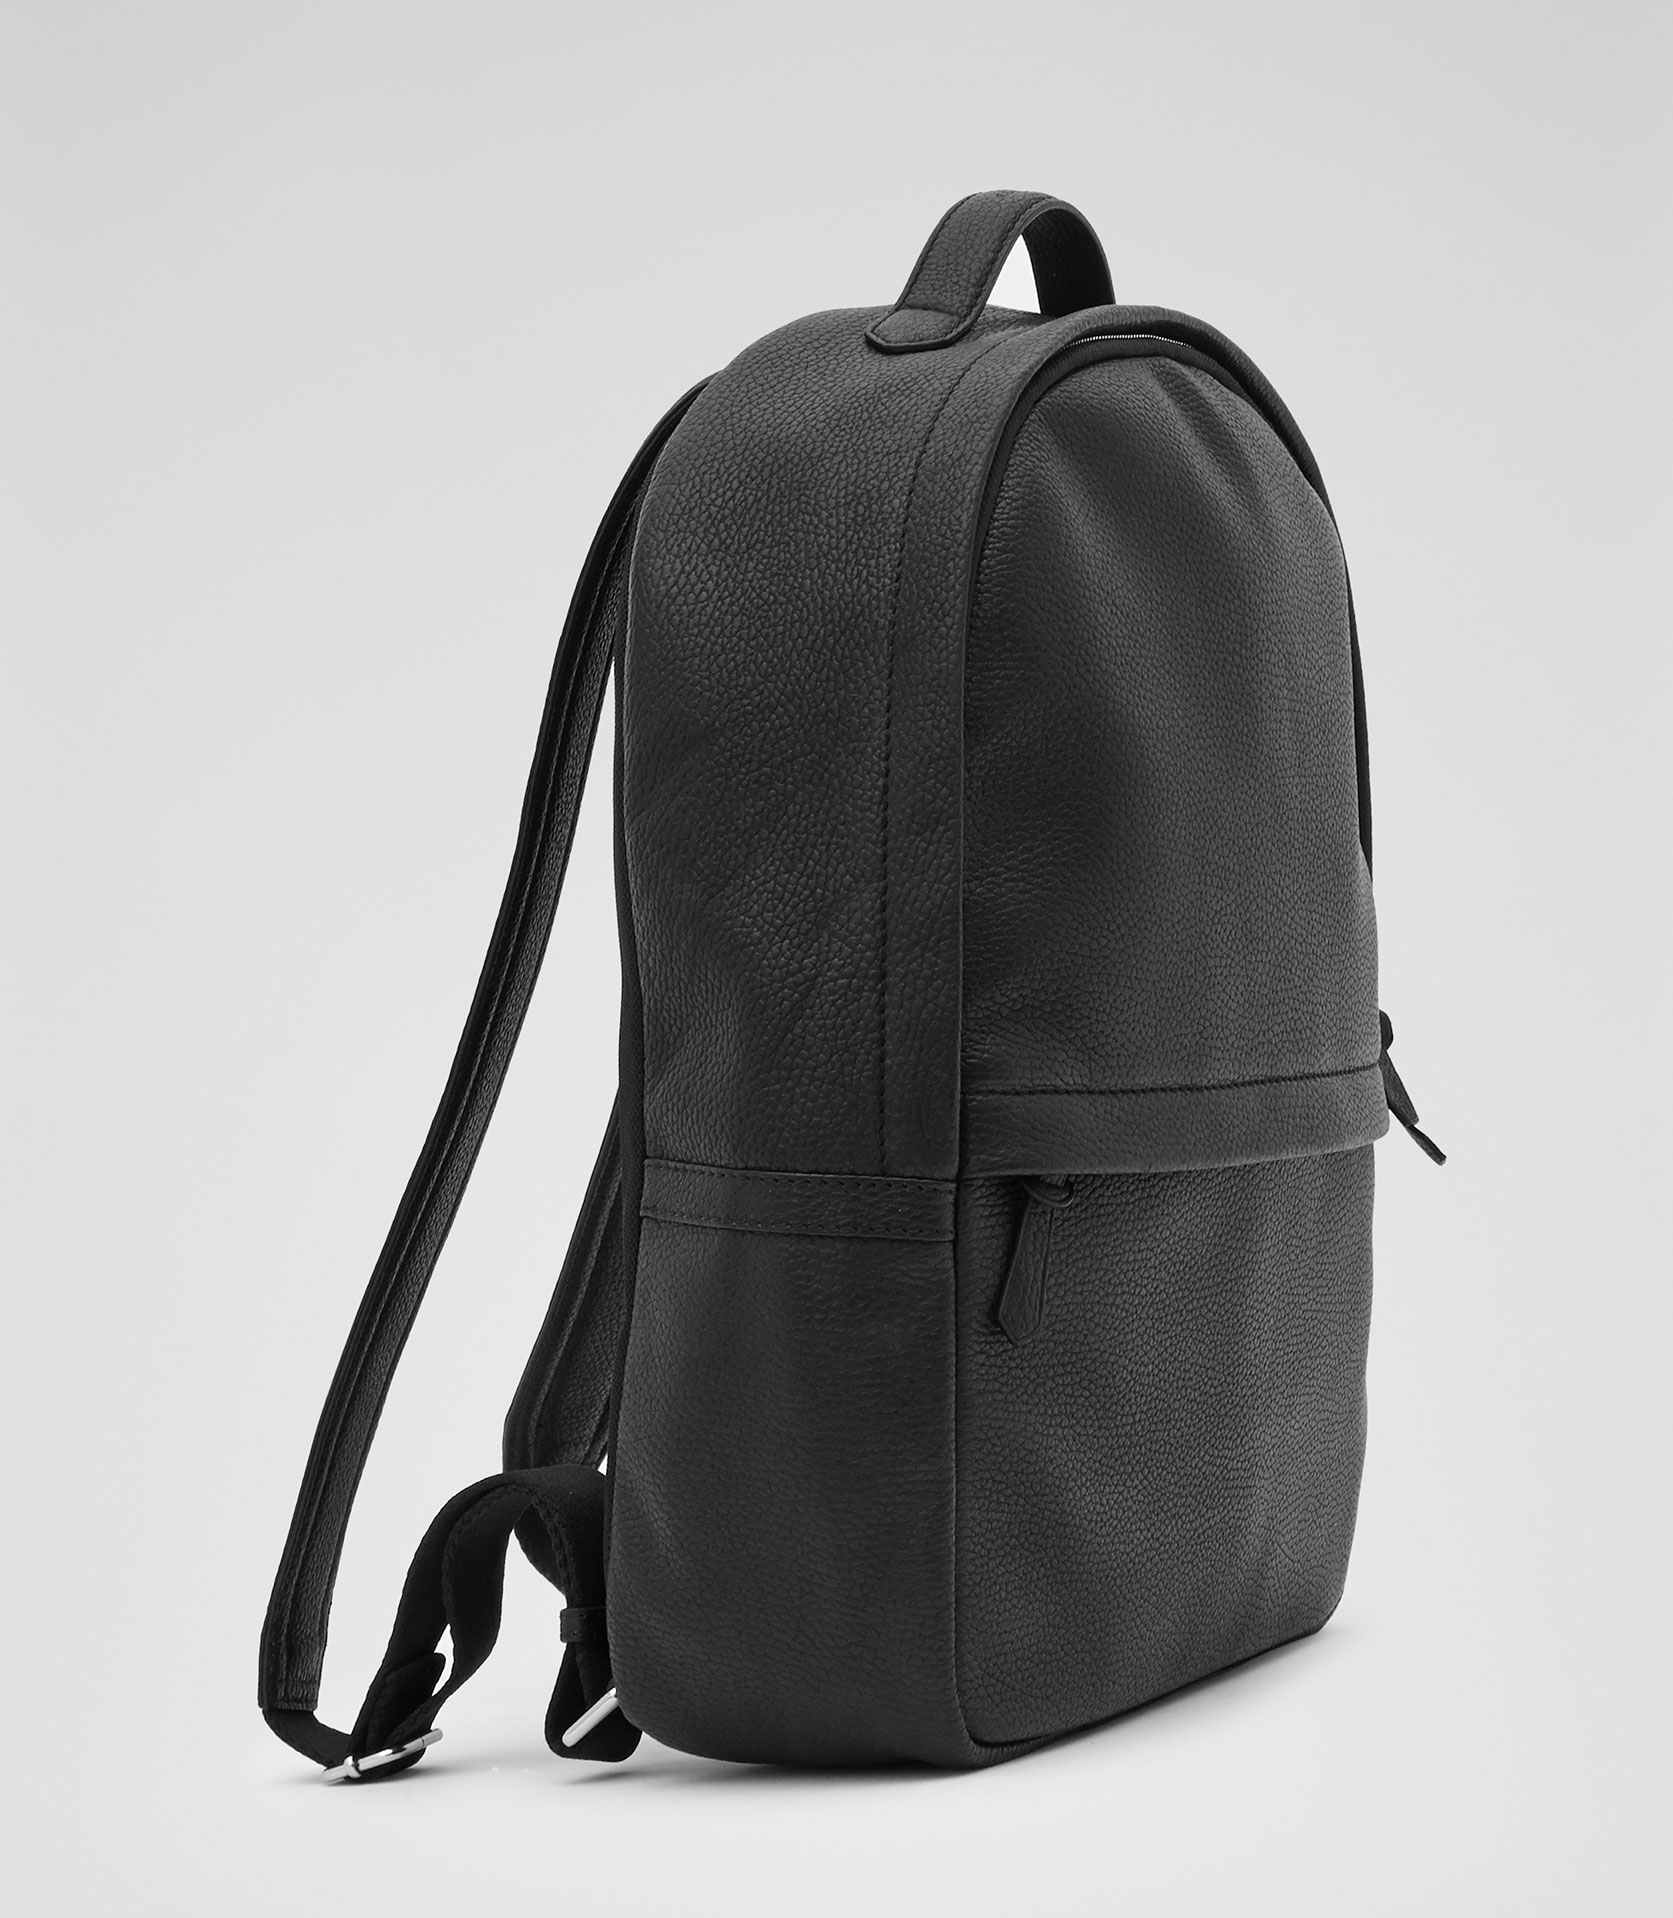 Great news for the jet-setters: Skagen's men's backpacks and travel bags for men offer the right balance of utility and luxury to help you travel in style. Enjoy FREE shipping on backpacks for men and all Skagen designs, no minimum.